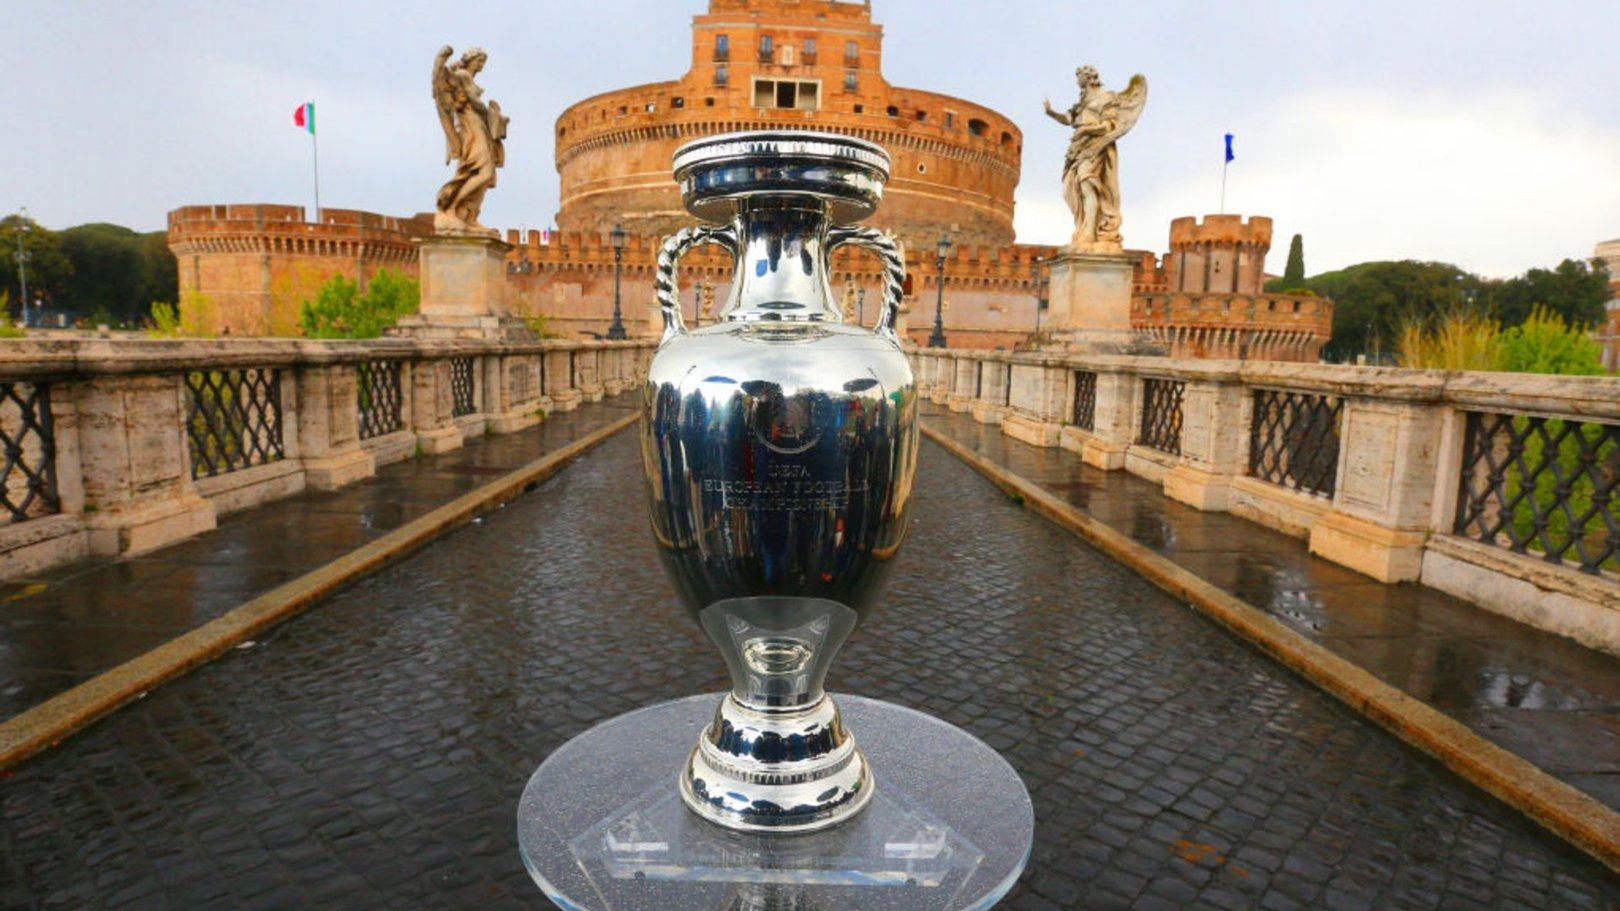 Euro 2020 last 16: essential information on our City stars